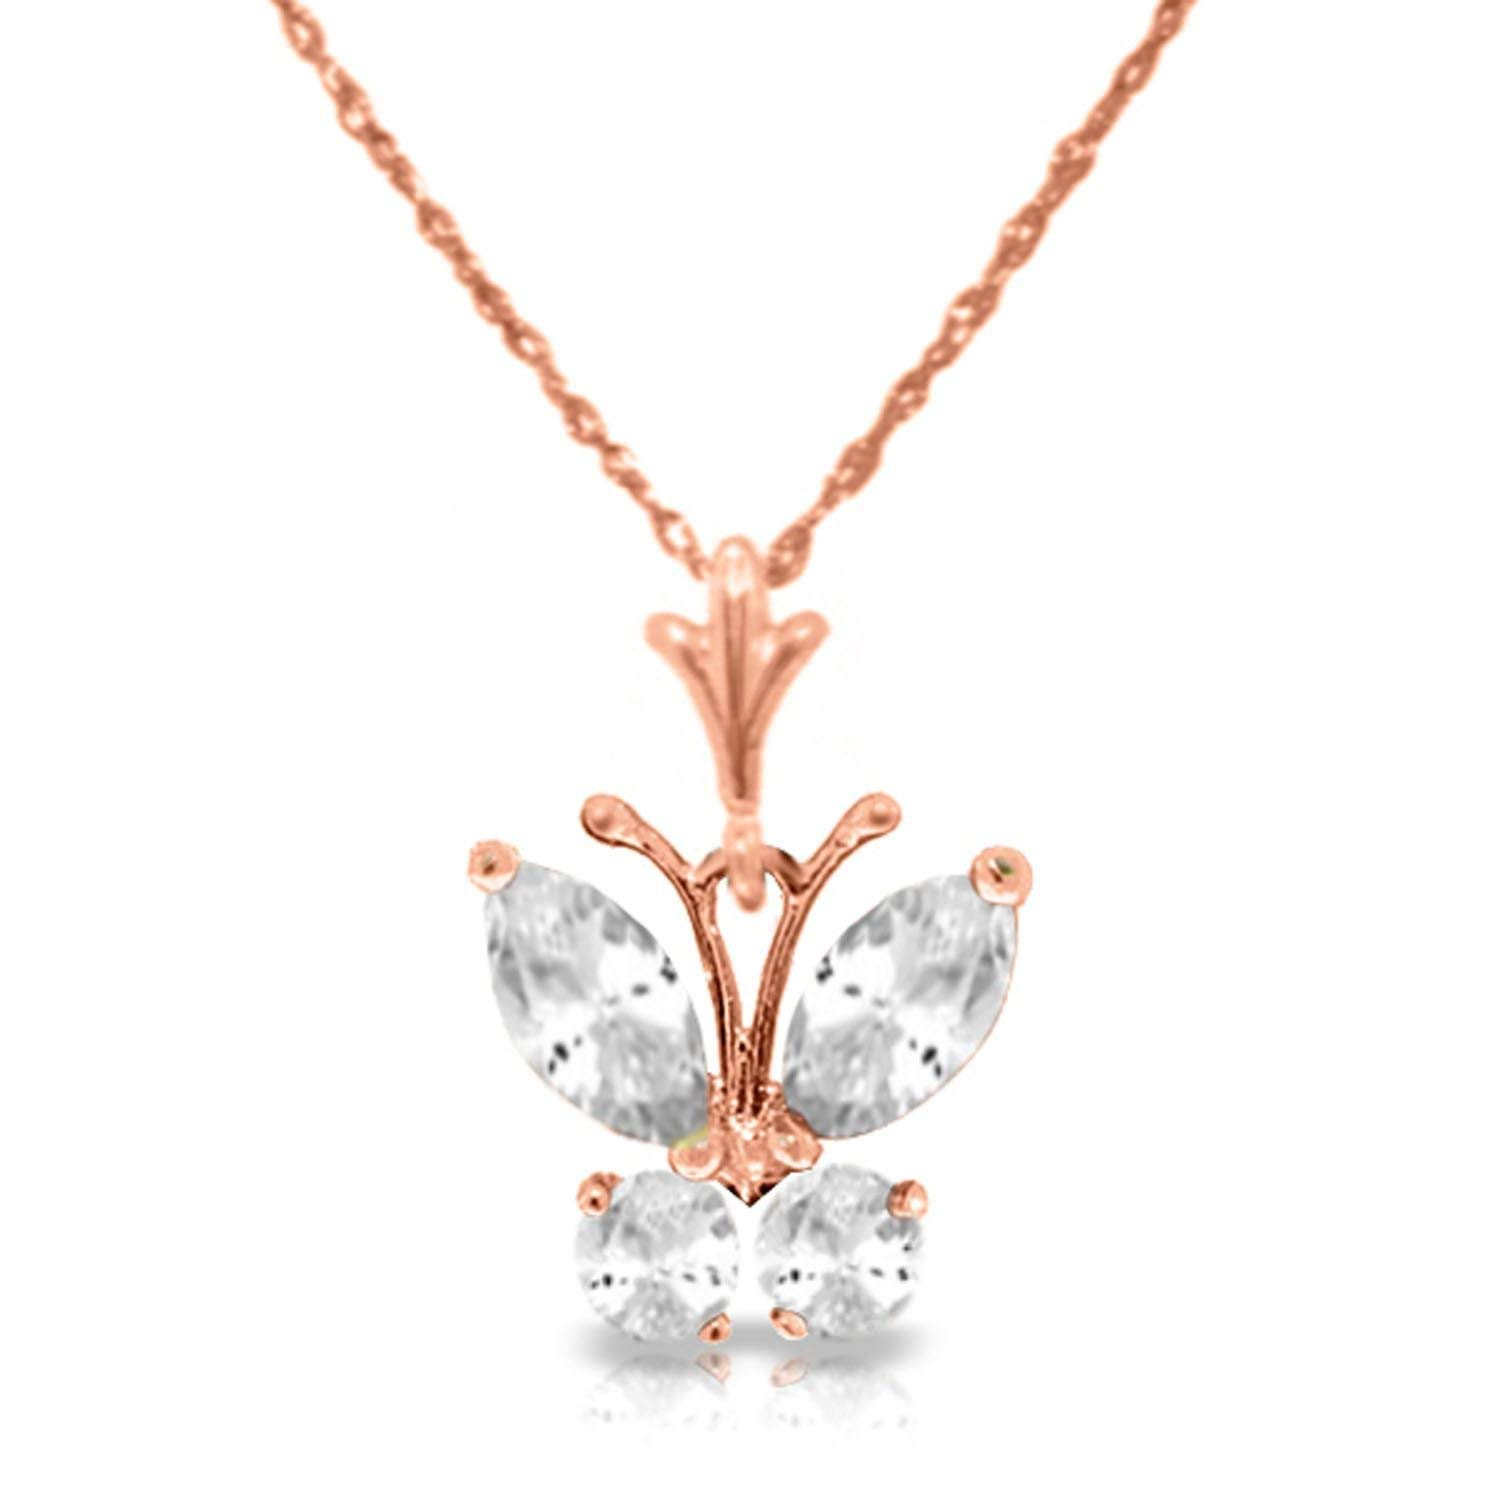 Get Quotations Alarri 1 5 Carat 14k Solid Rose Gold Erfly Necklace Cubic Zirconia With 24 Inch Chain Length